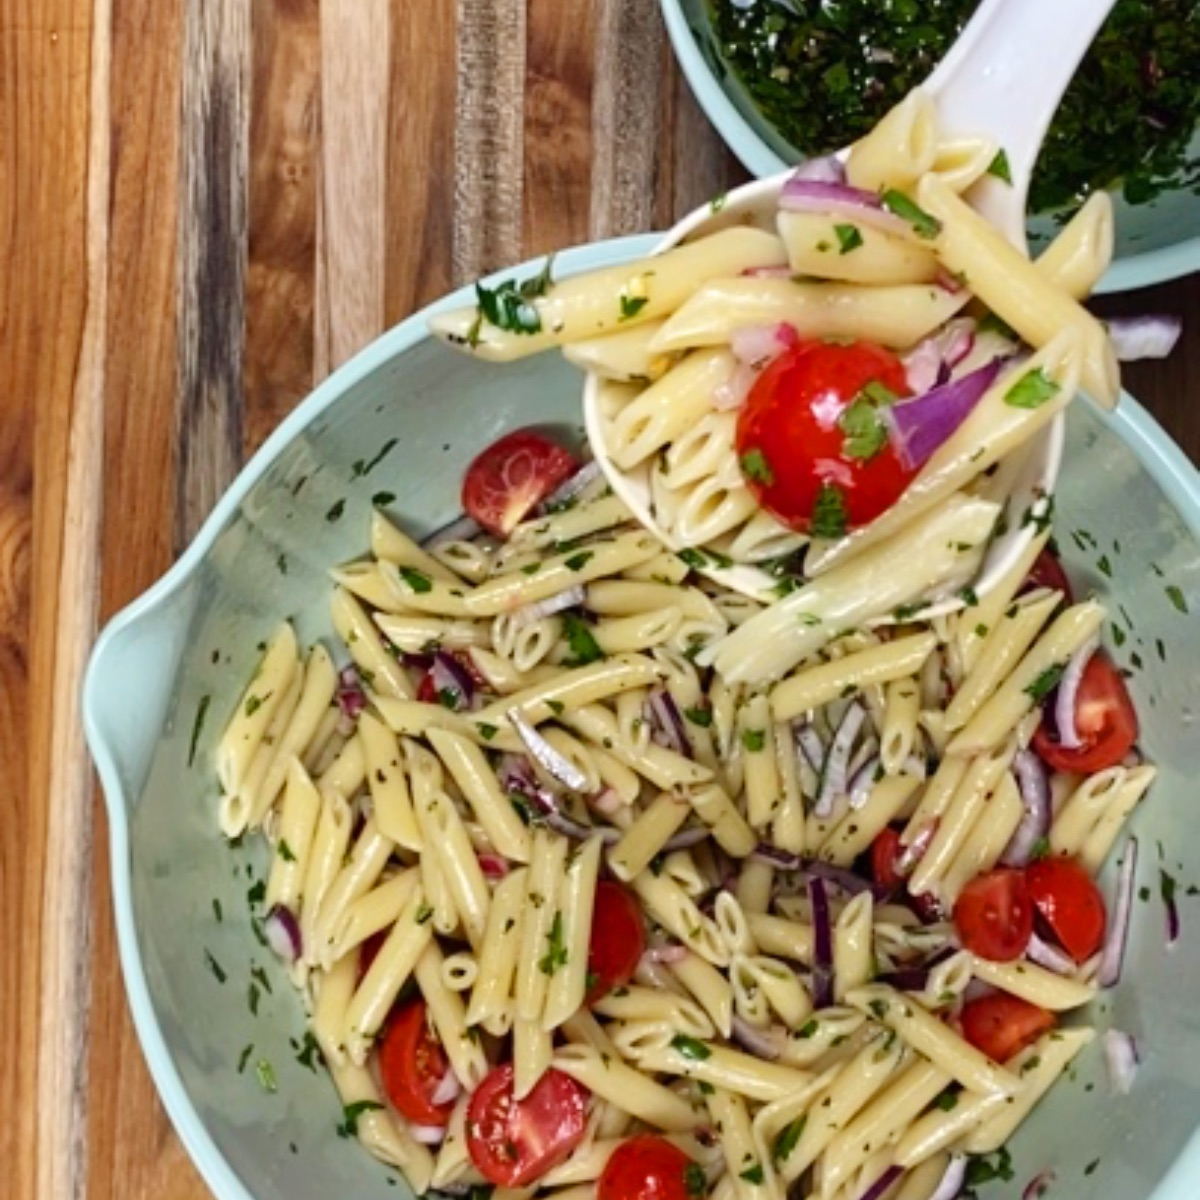 A serving spoon of chimichurri pasta salad being raised toward the camera, with the mixing bowl full of pasta salad underneath.